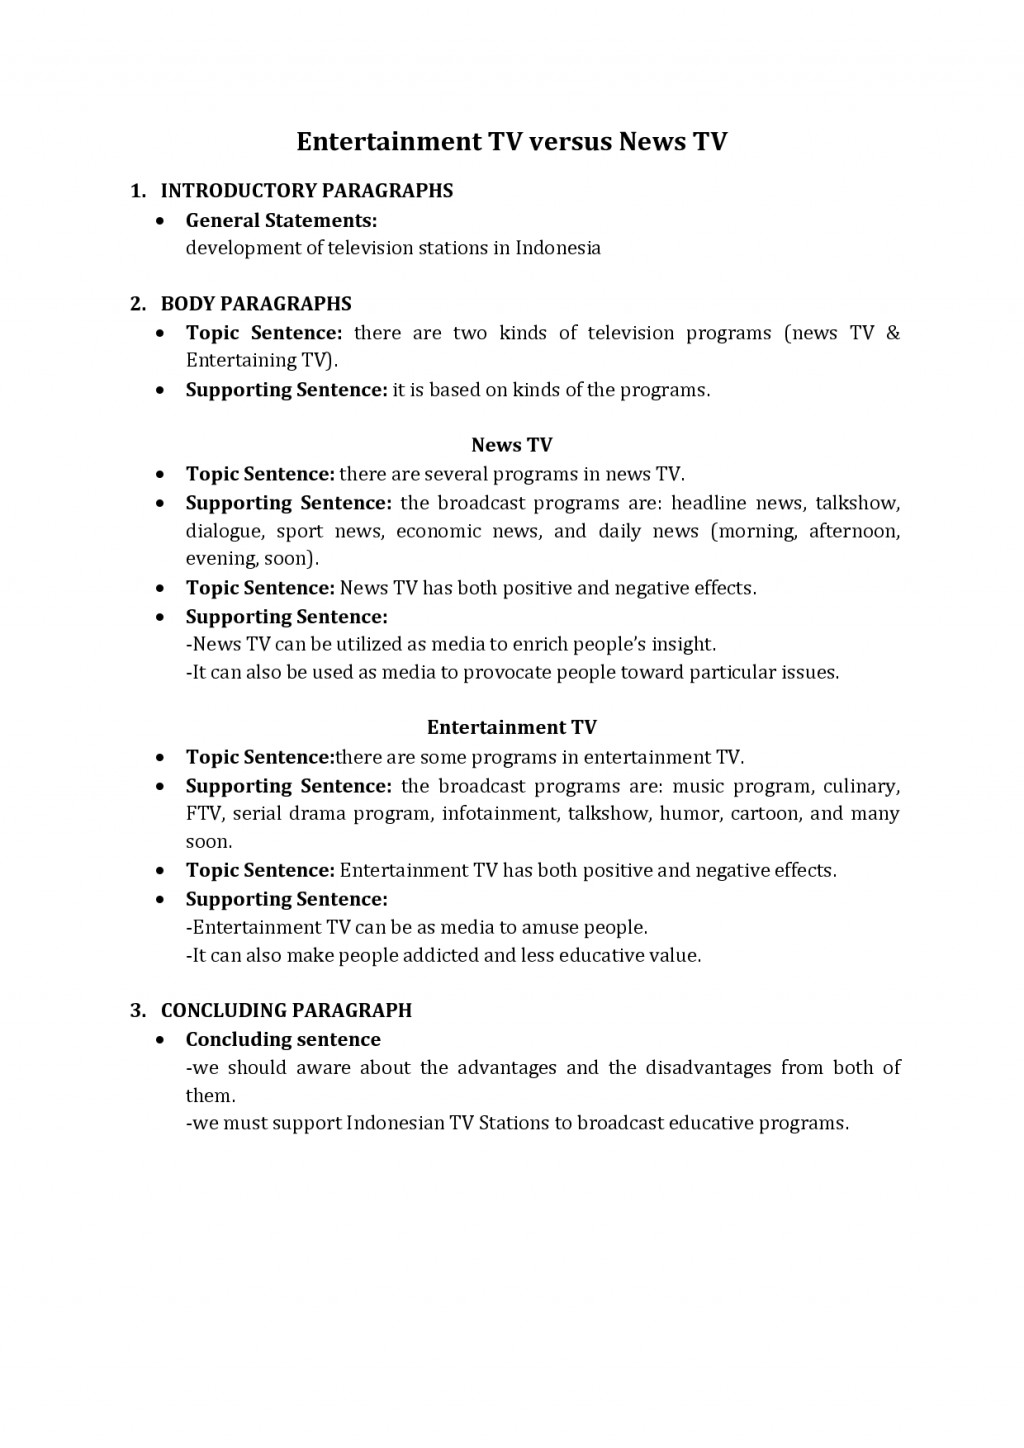 004 Essay Example College Outline Good English Essays Examples Ukran Soochi Co Reddit Writing Format Student How To Write Applic About Sports Apply Texas Topic Uc Striking Heading Template Pdf Research Paper Large